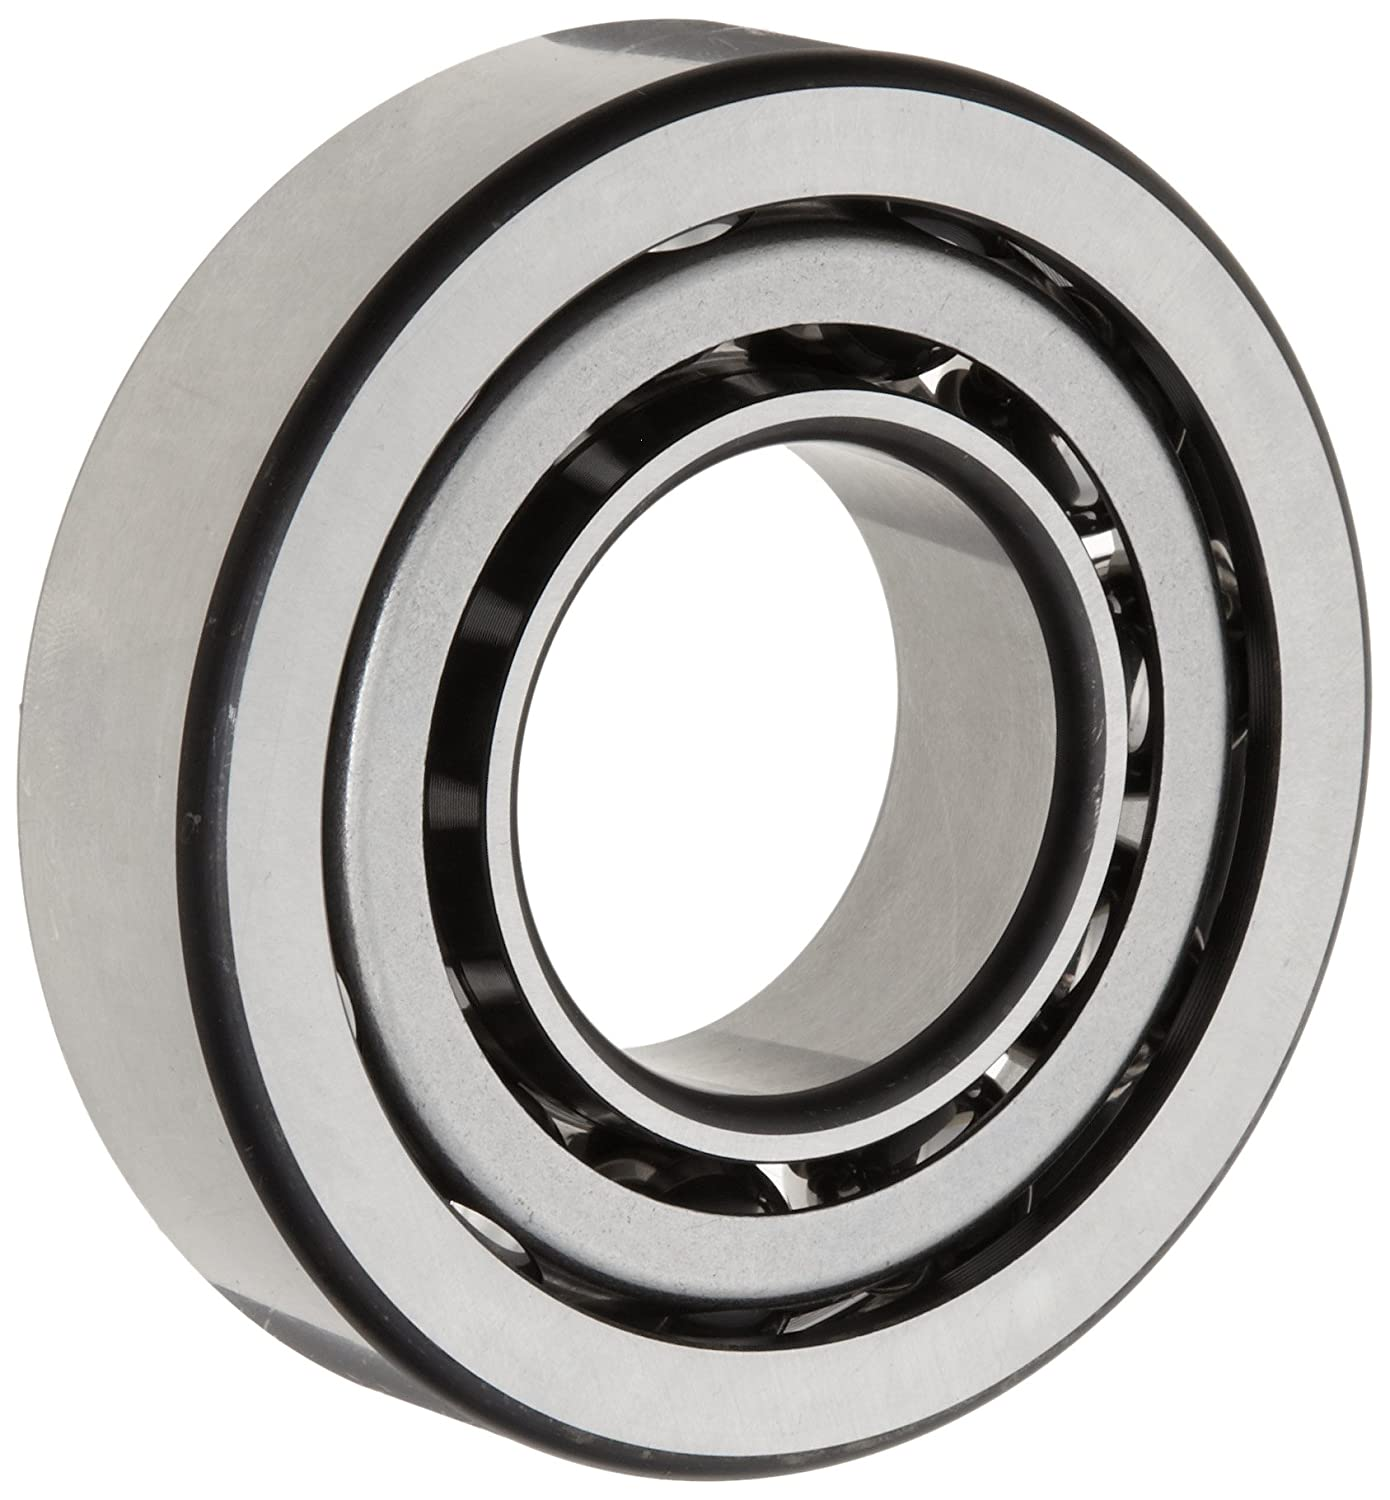 FAG 7307B-TVP-UA Angular Contact Ball Bearing, Single Row, Open, 40° Contact Angle, Polyamide/Nylon Cage, Normal Clearance, Metric, 35mm ID, 80mm OD, 21mm Width, 9500rpm Maximum Rotational Speed, 6000lbf Static Load Capacity, 8800lbf Dynamic Load Capac